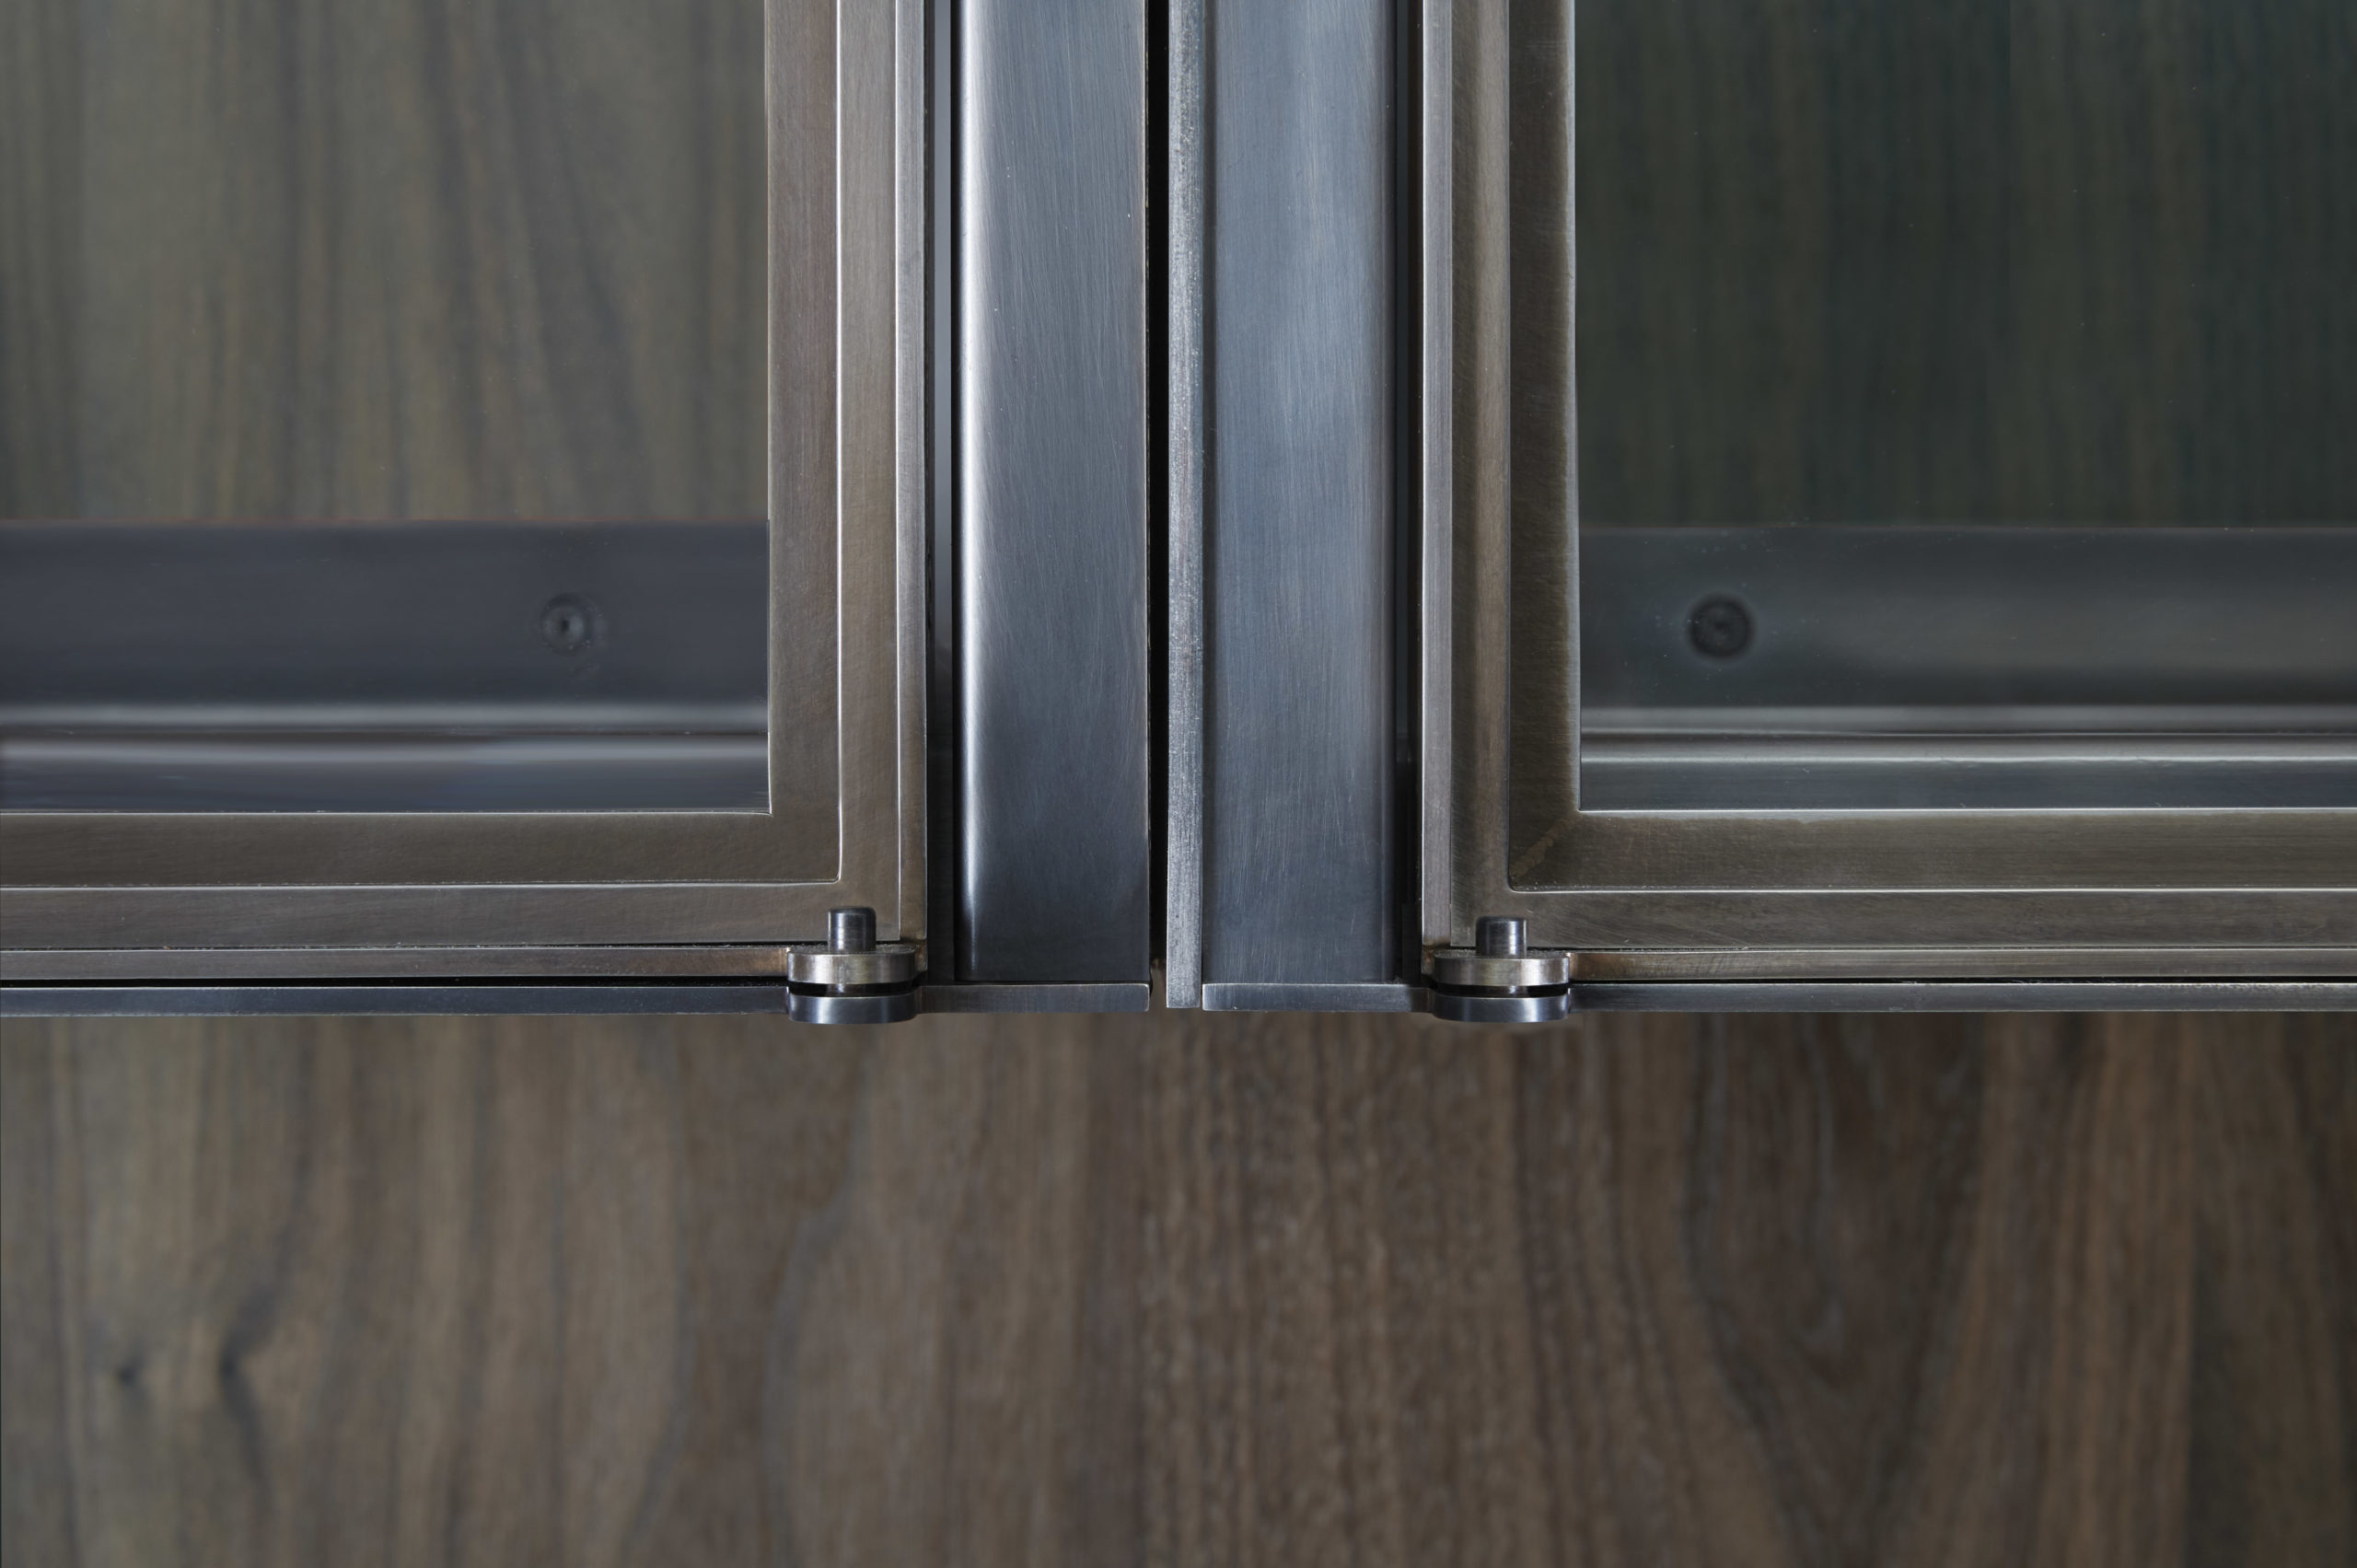 amuneal_products_WNWN_NYDC_6Blackened-Stainless-Bar-Detail-Cabinet-Hinge_nycshowroom-scaled-1